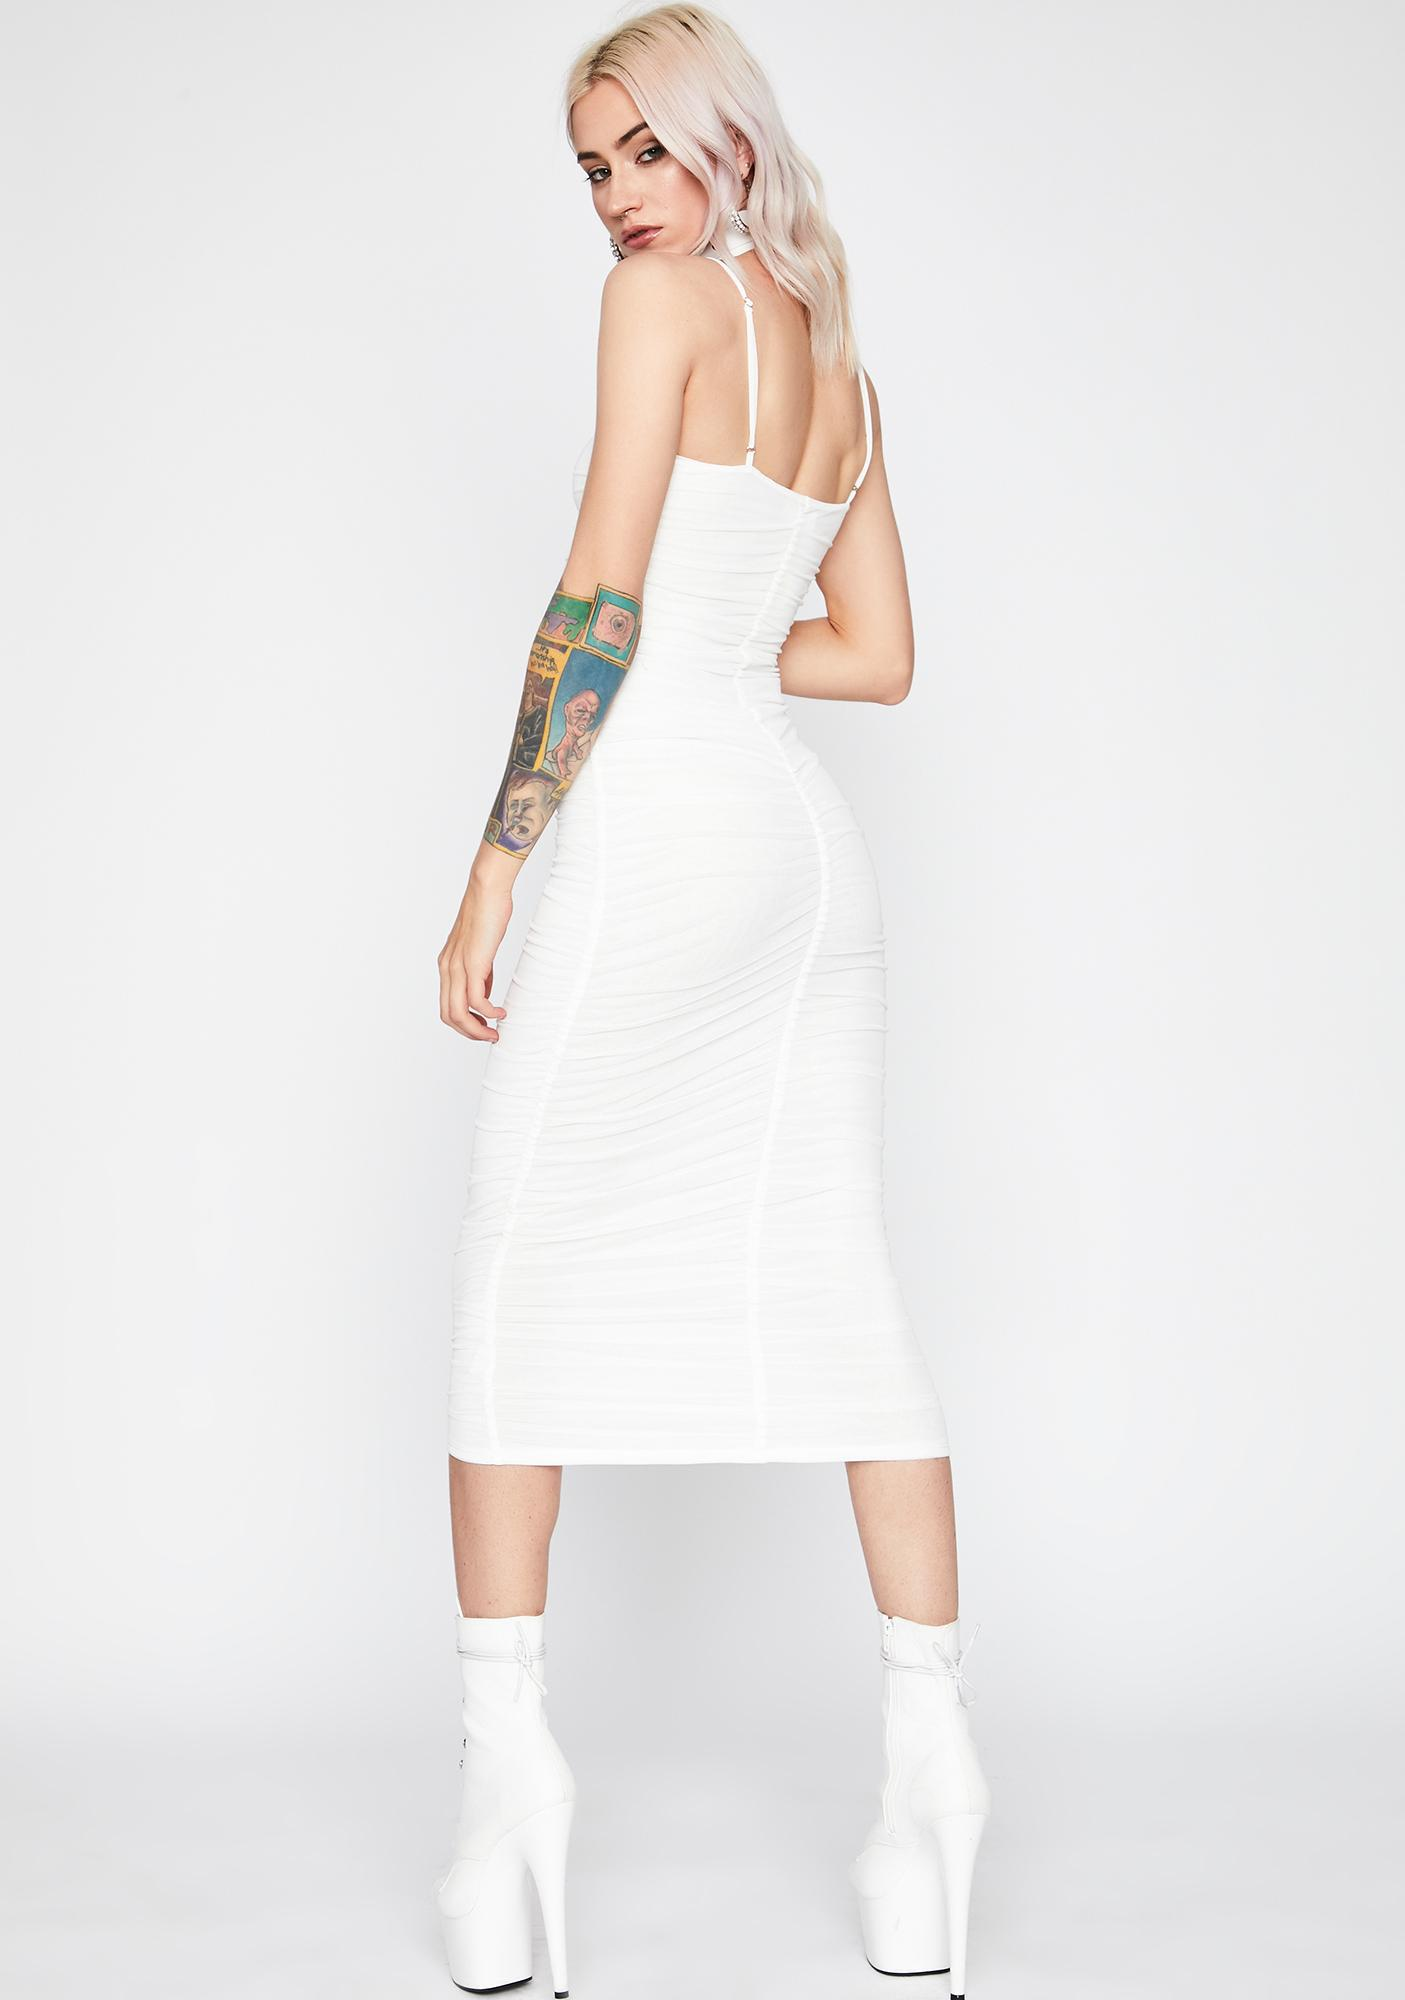 Legally Angelic Ruched Midi Dress